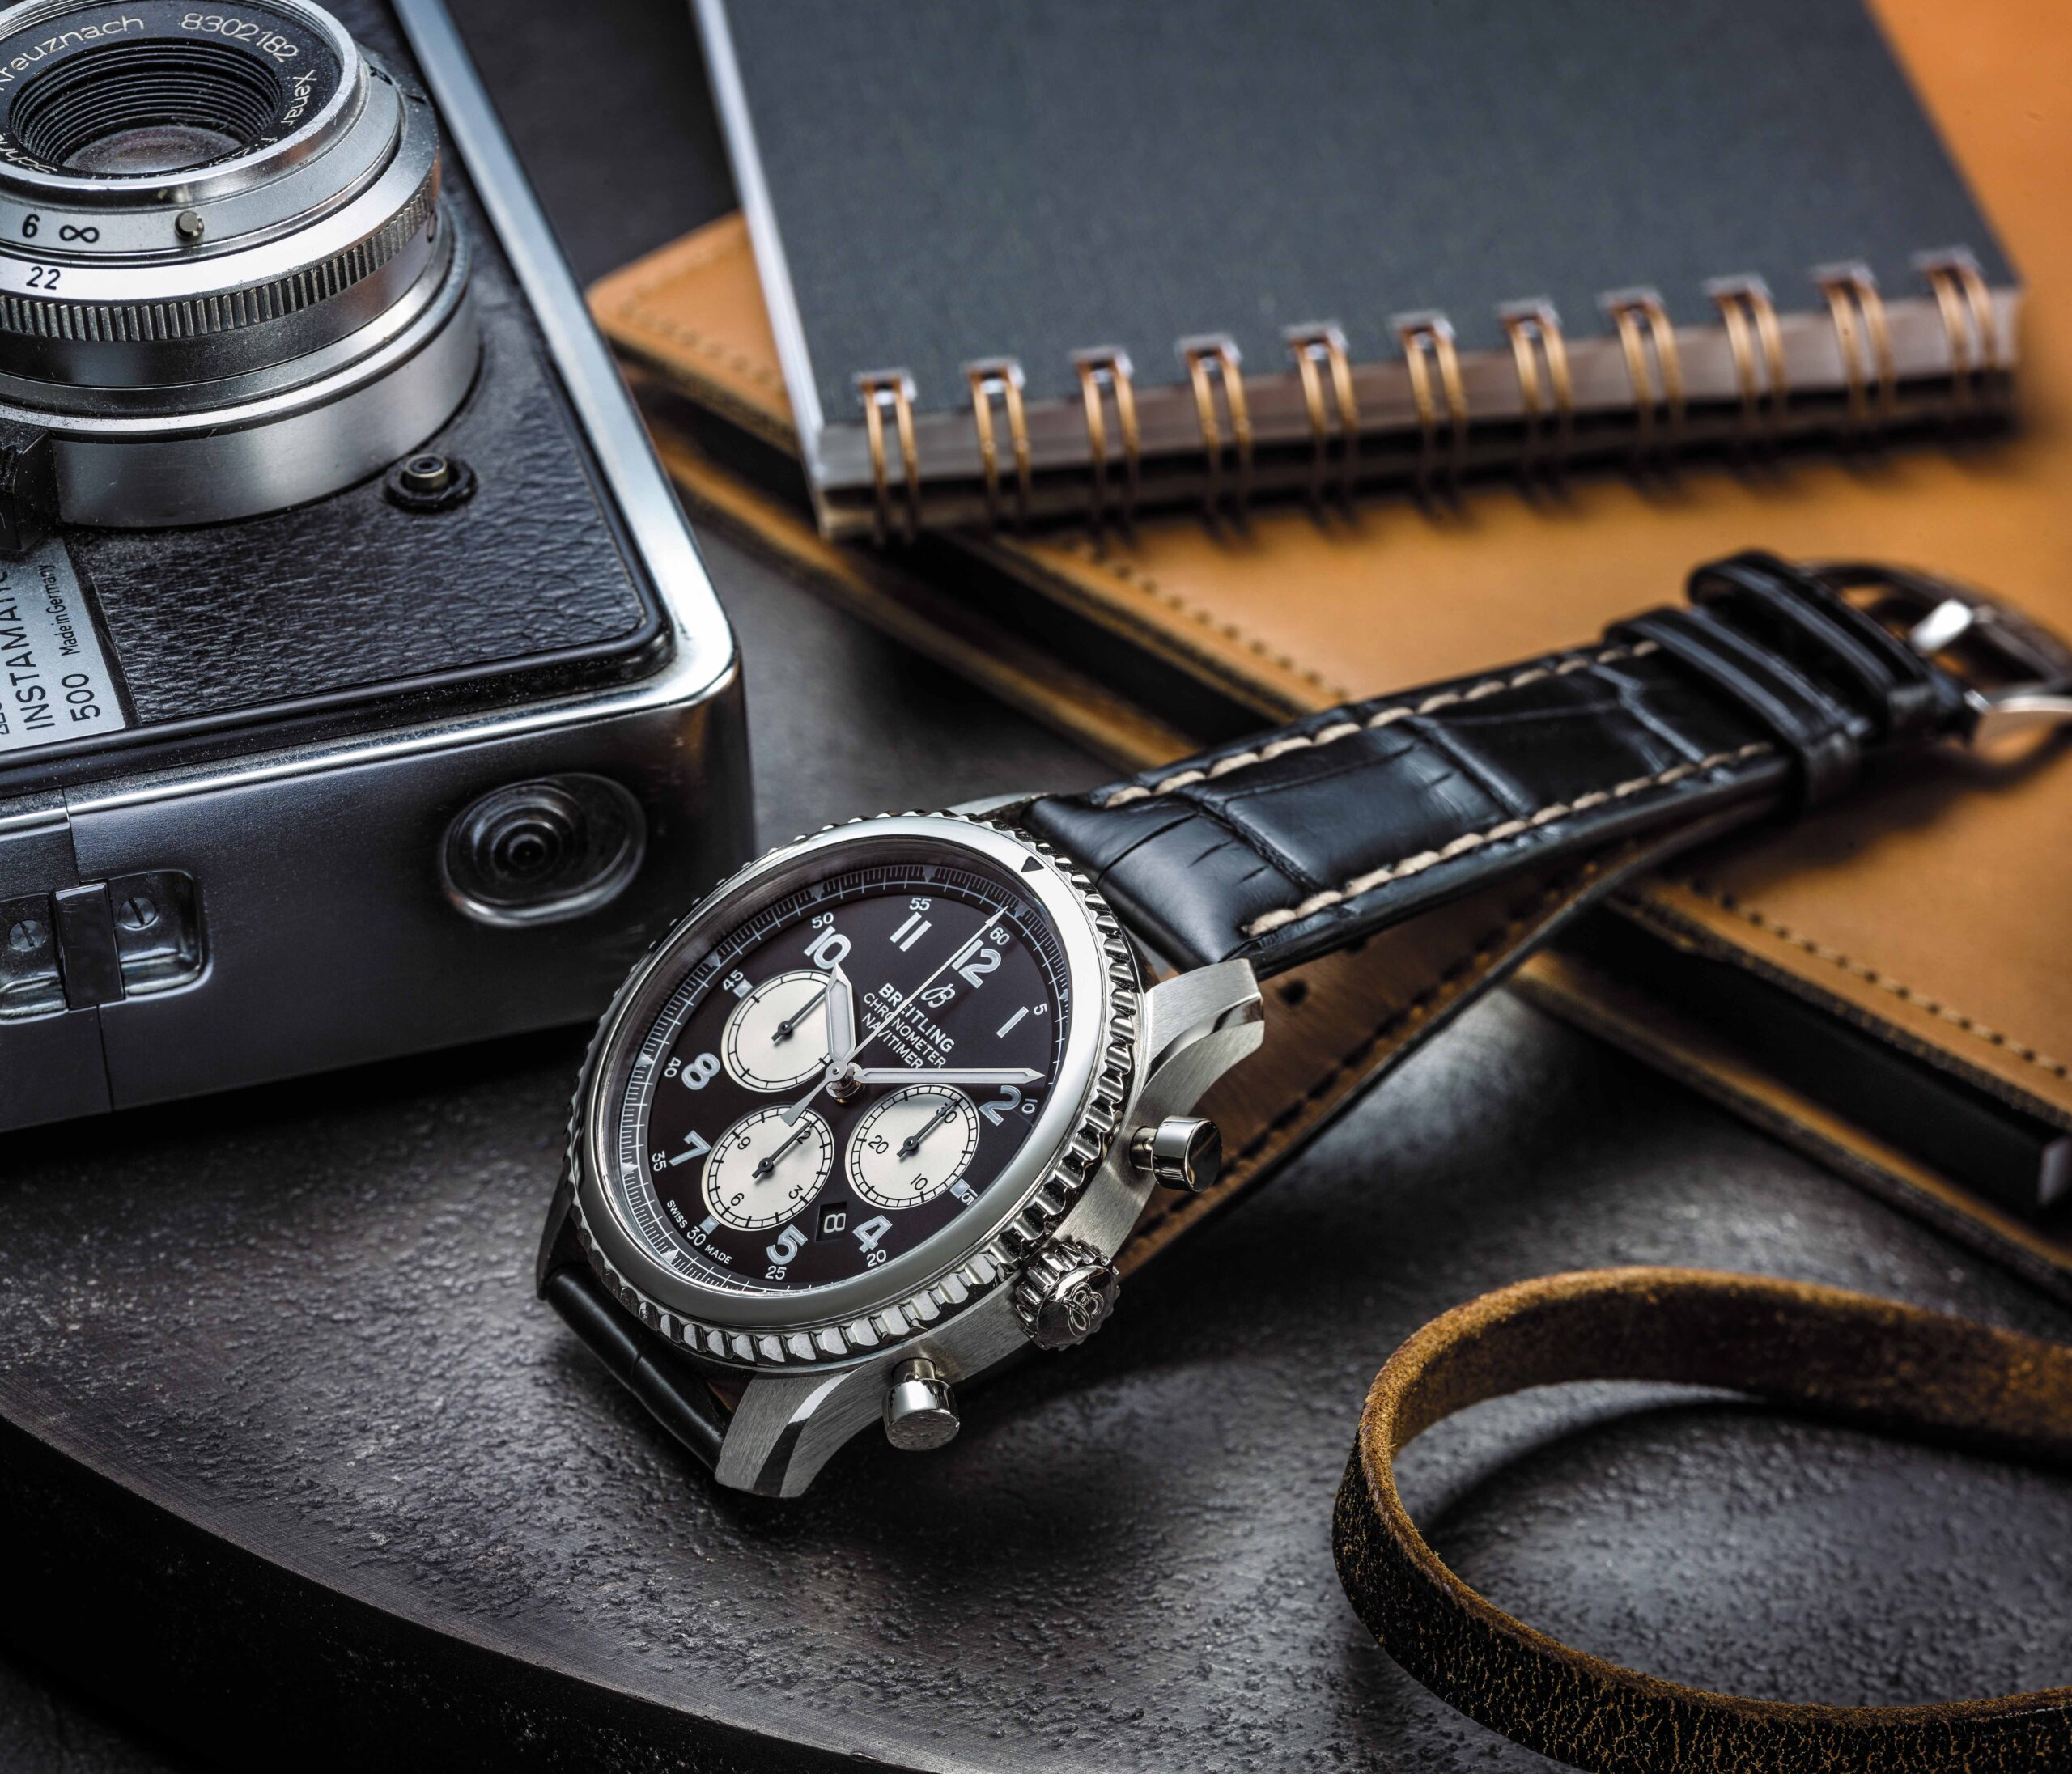 The new BREITLING Navitimer 8 Collection